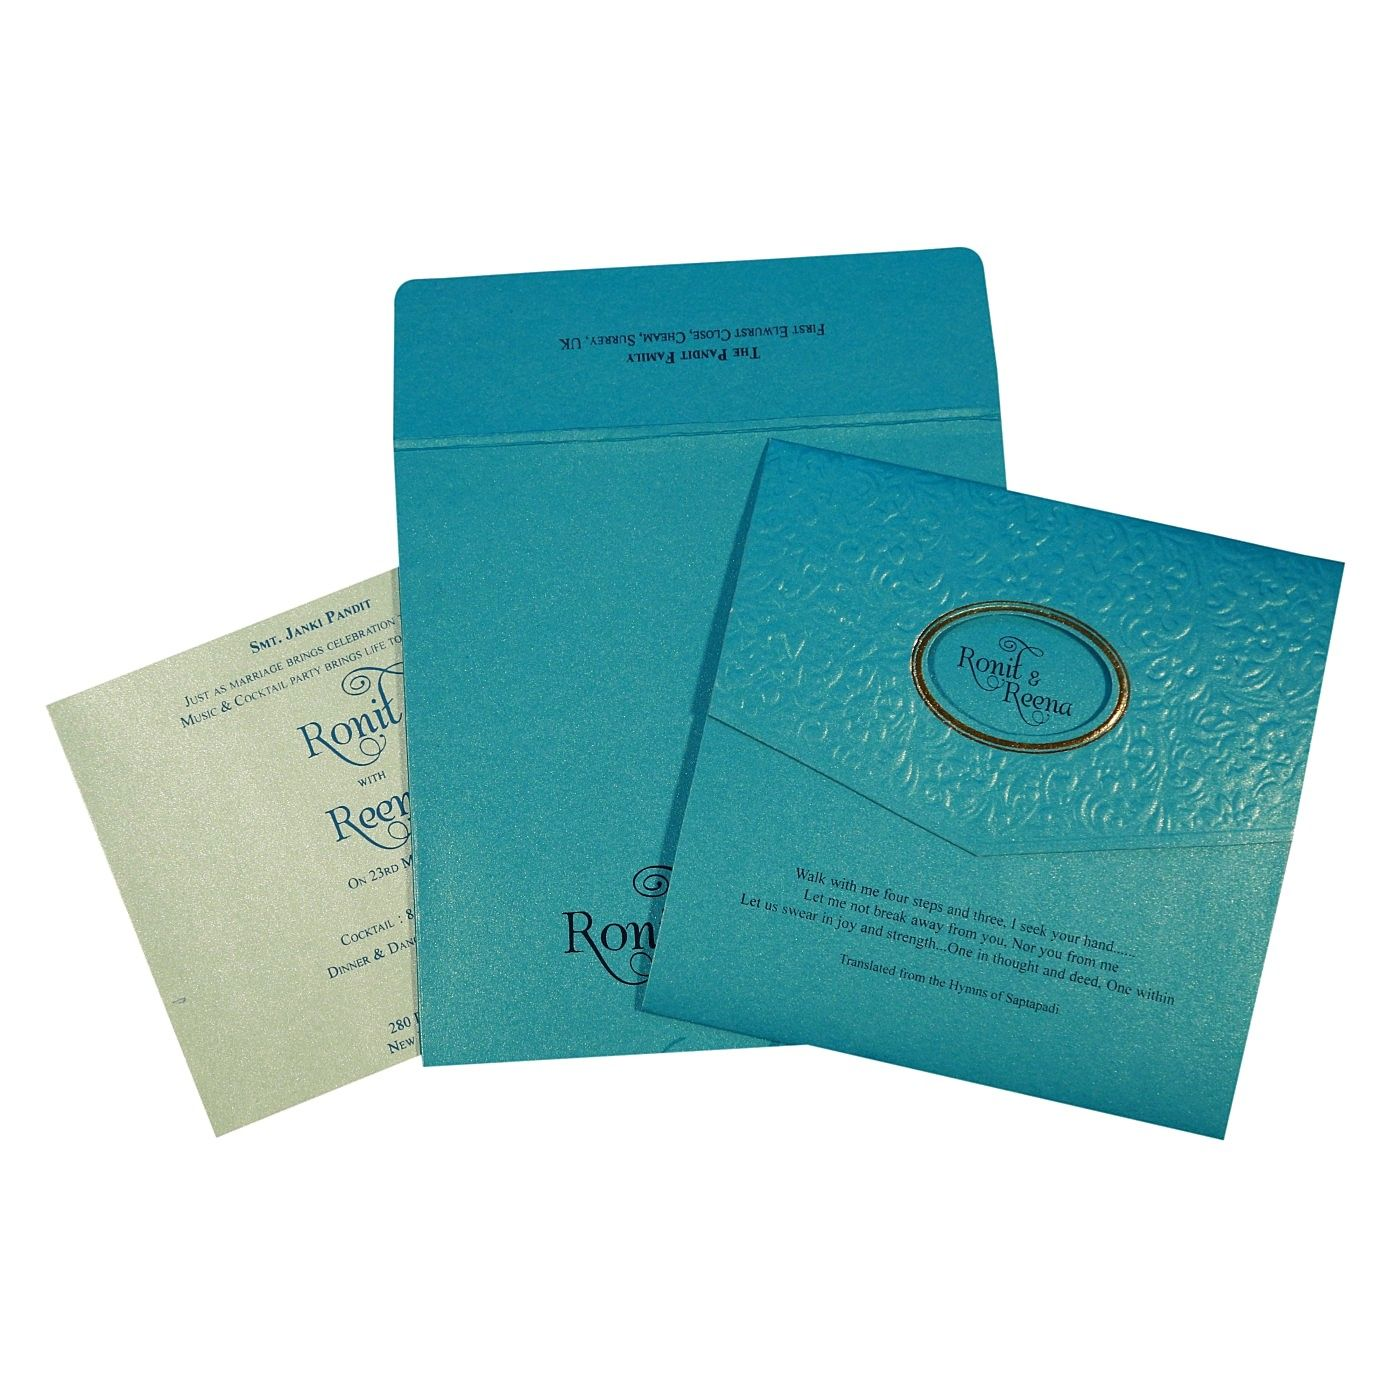 TURQUOISE SHIMMERY FOIL STAMPED WEDDING INVITATION : CG-1737 - IndianWeddingCards